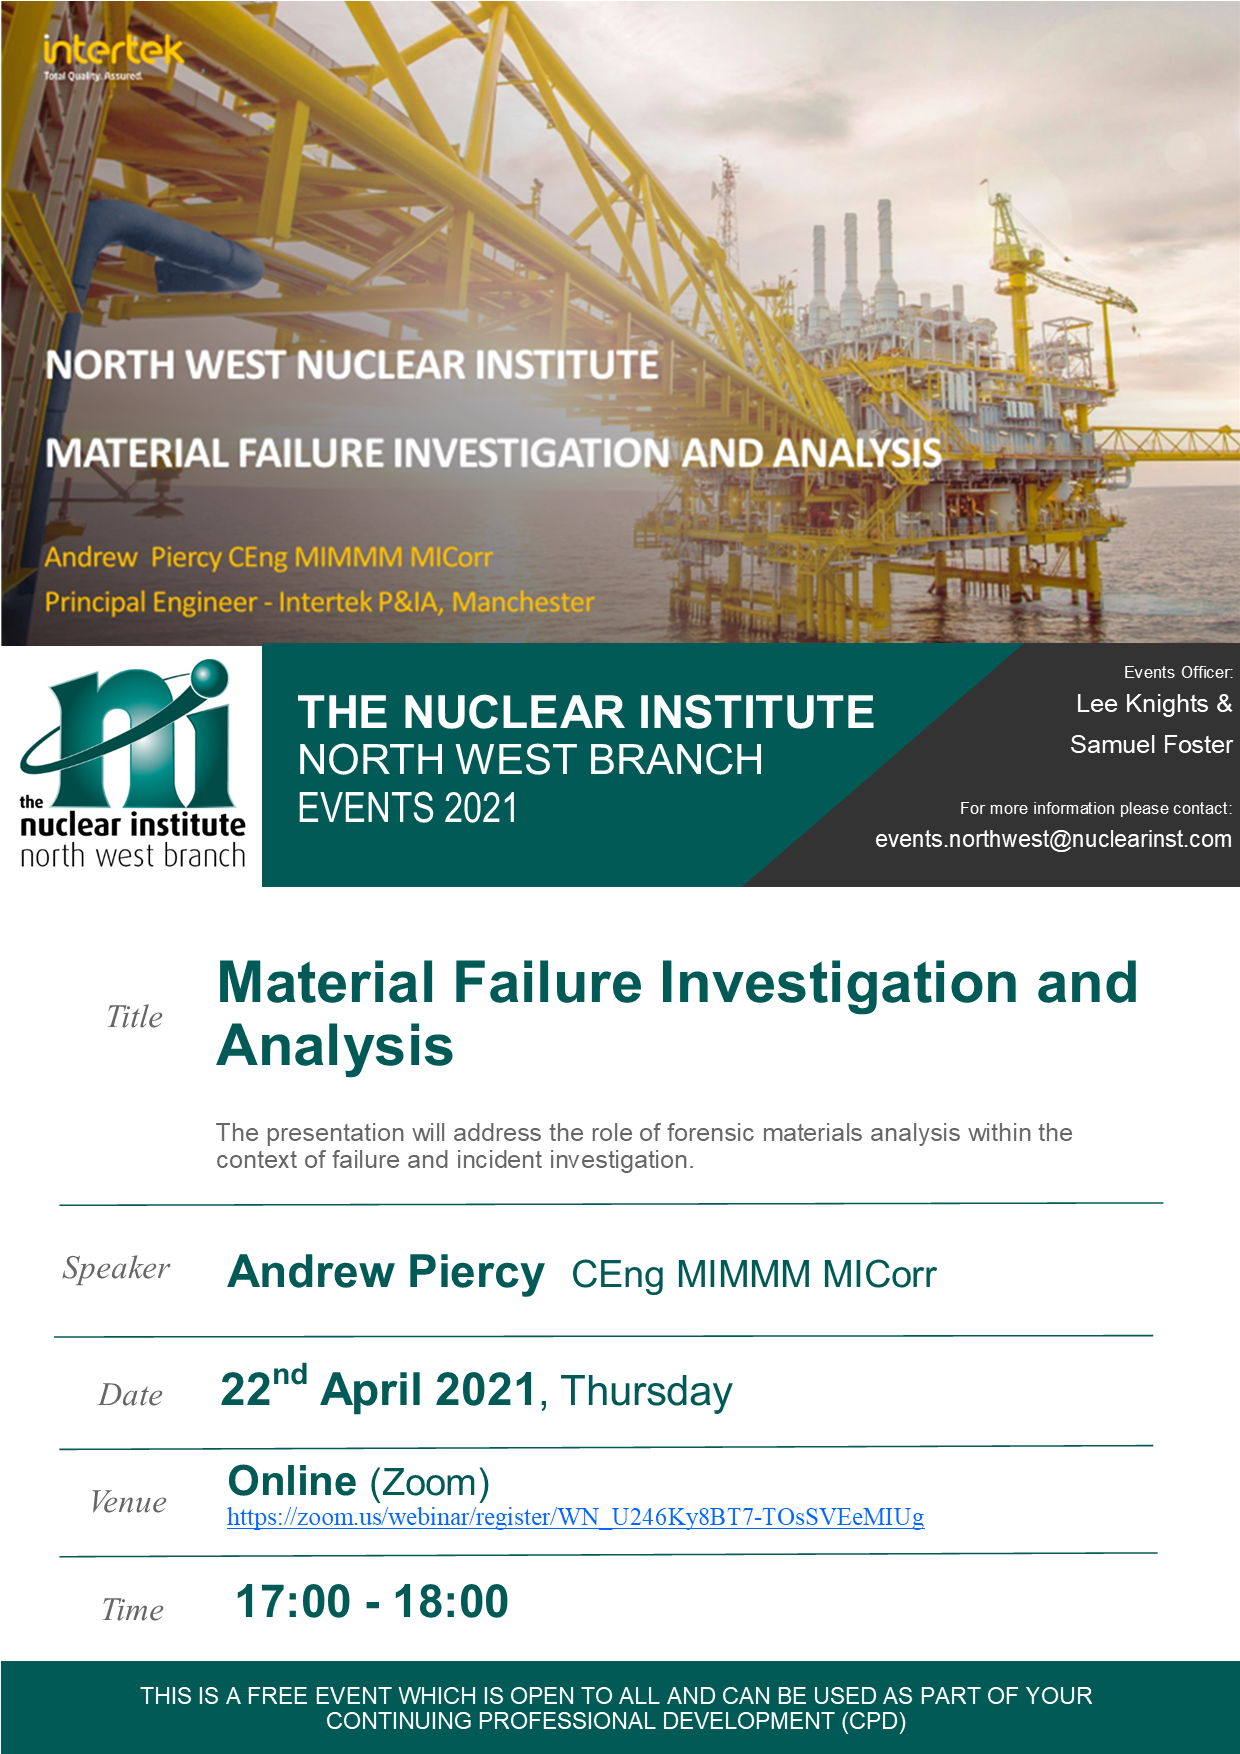 NWNI Material Failure Investigations and Analysis